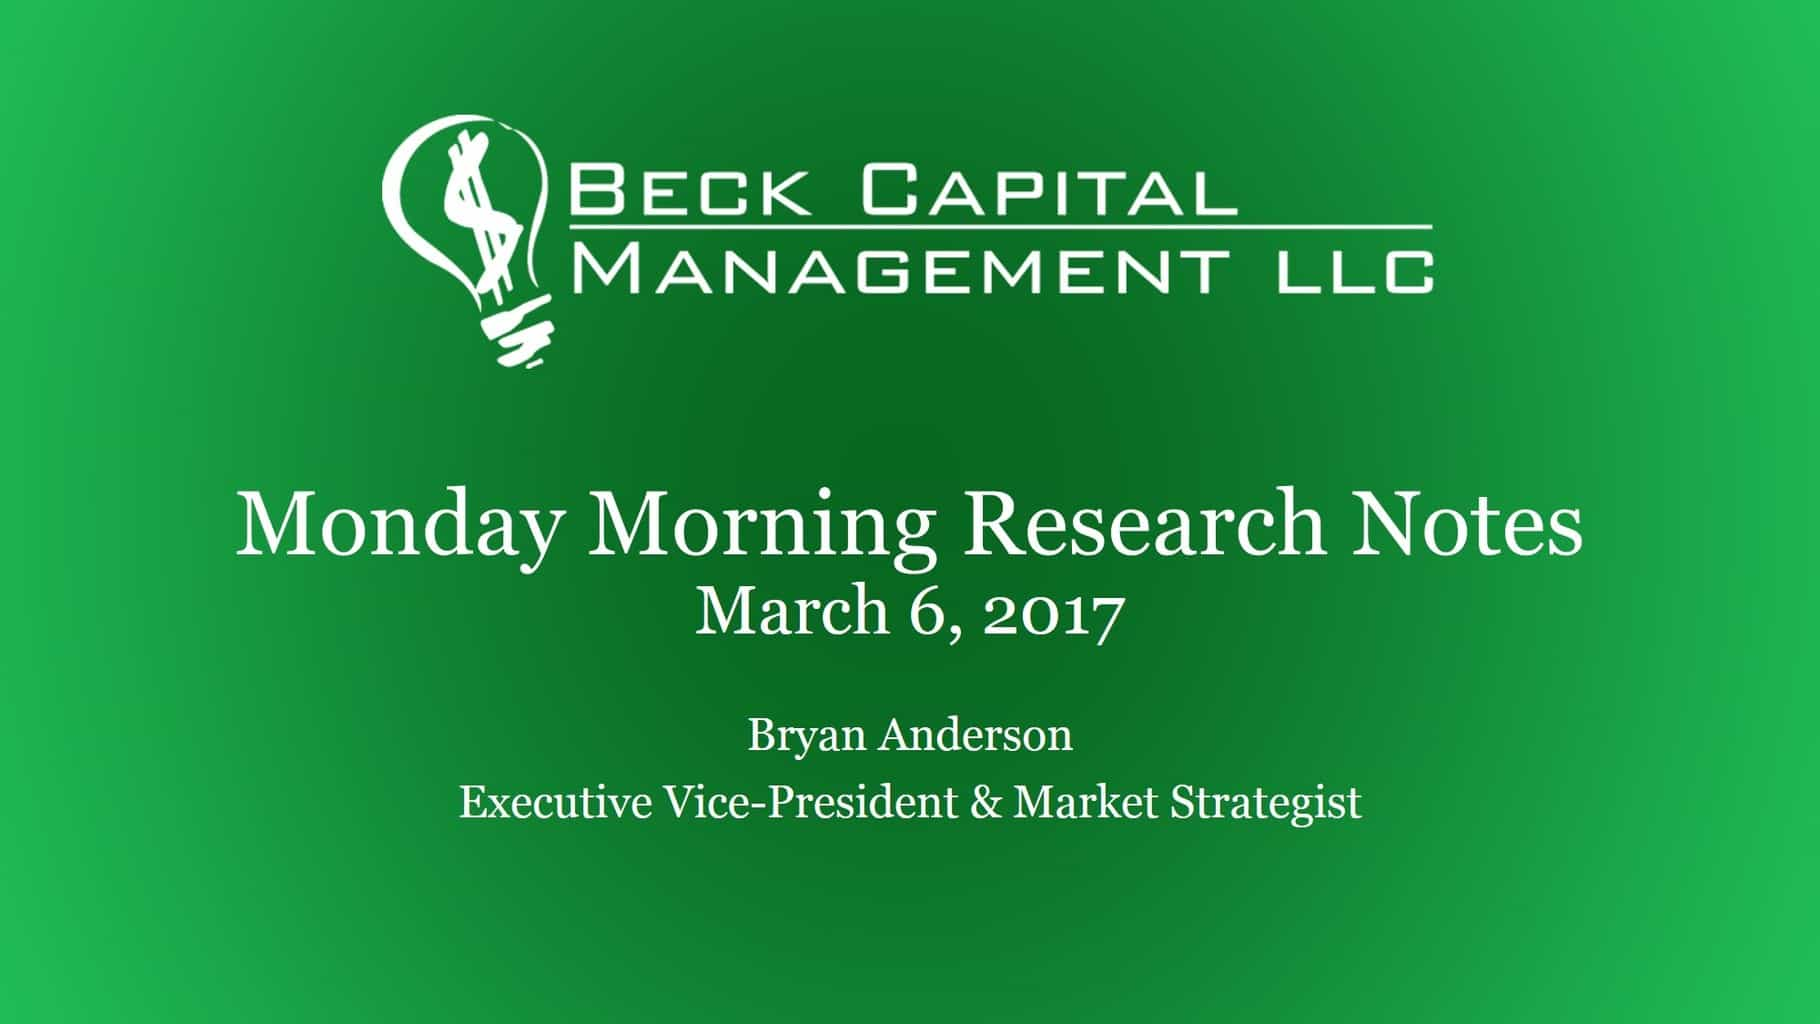 Monday Morning Research Notes - March 6, 2017